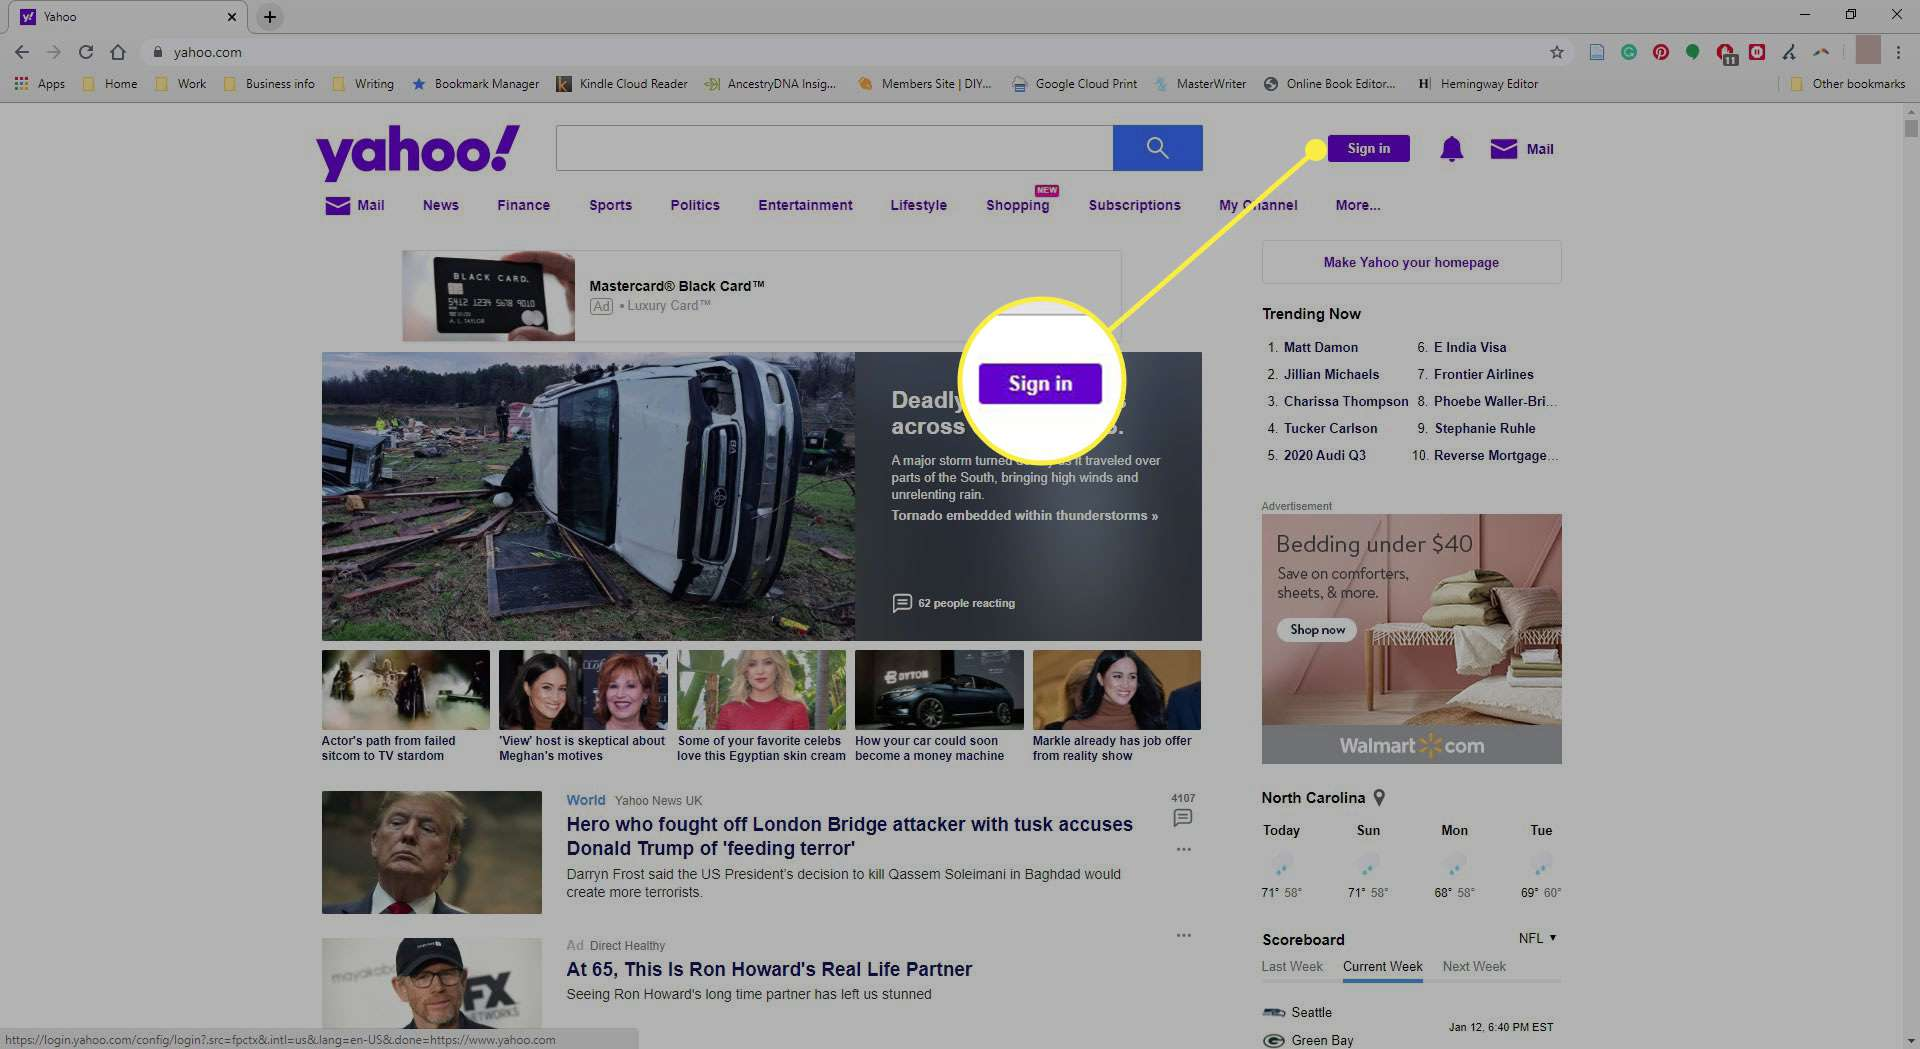 A screenshot of the Yahoo homepage with the Sign In button highlighted